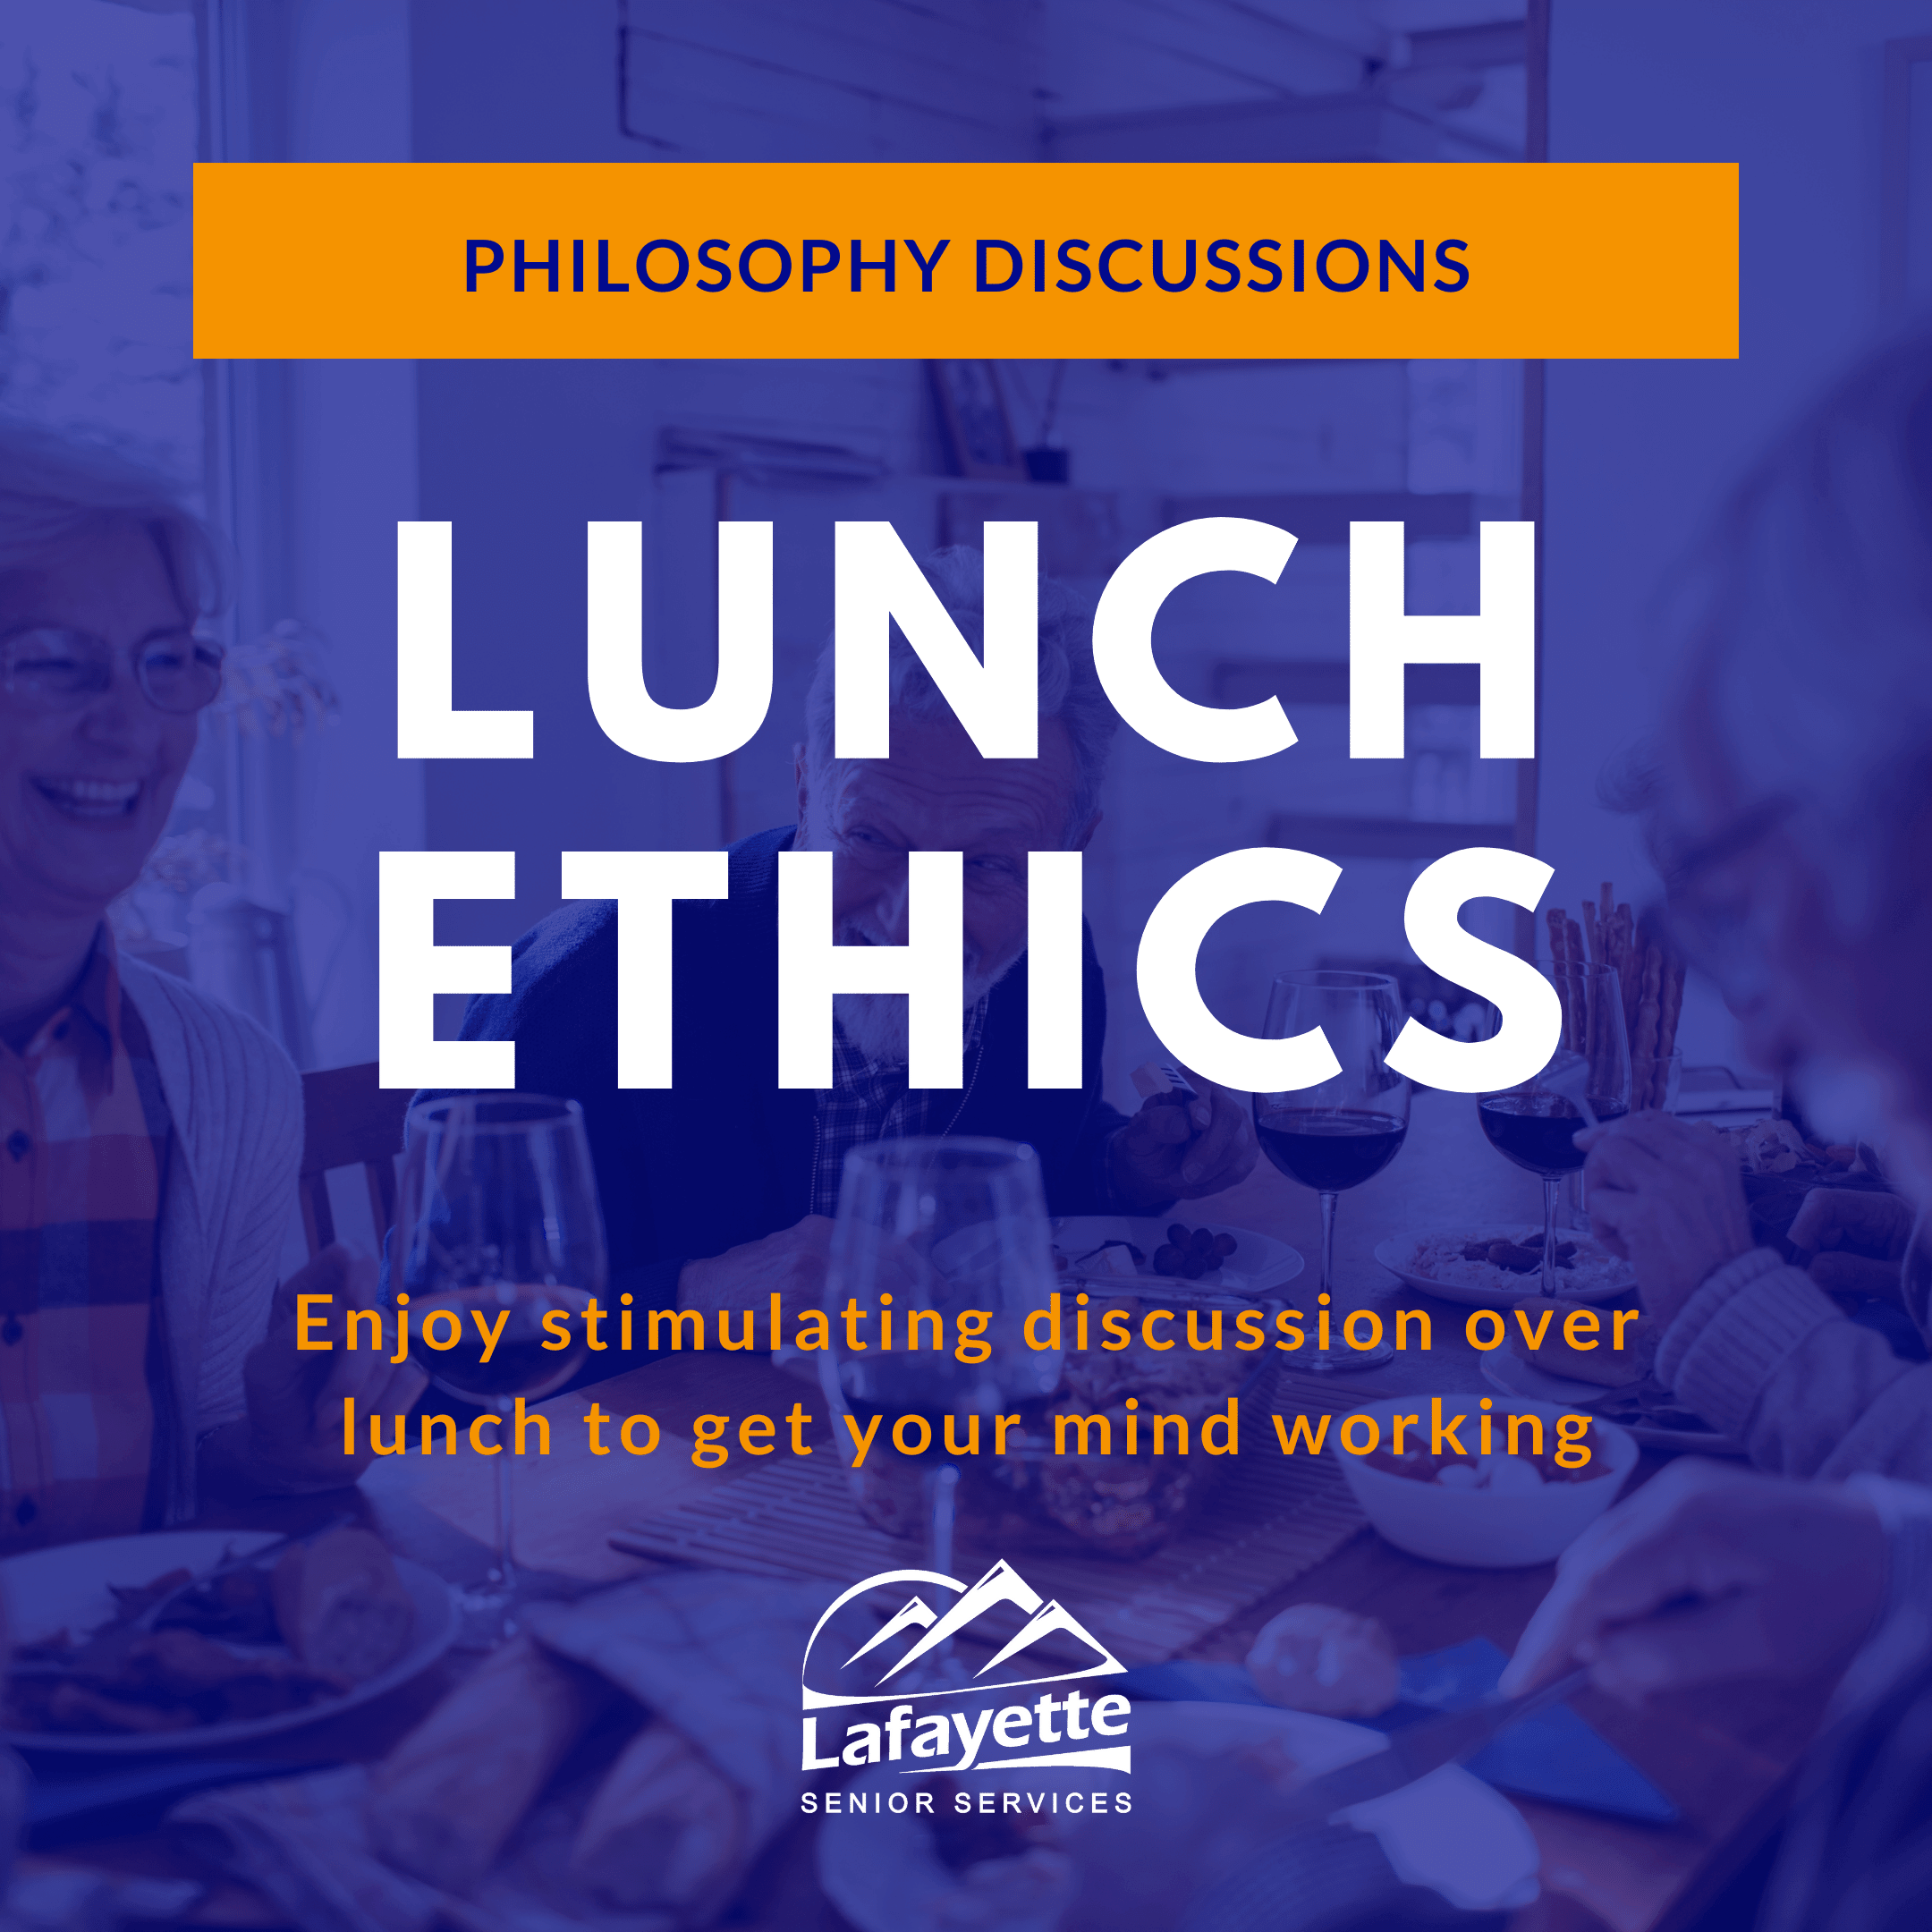 Philosophy discussions: Lunch ethics, enjoy stimulating discussion over lunch to get your mind worki